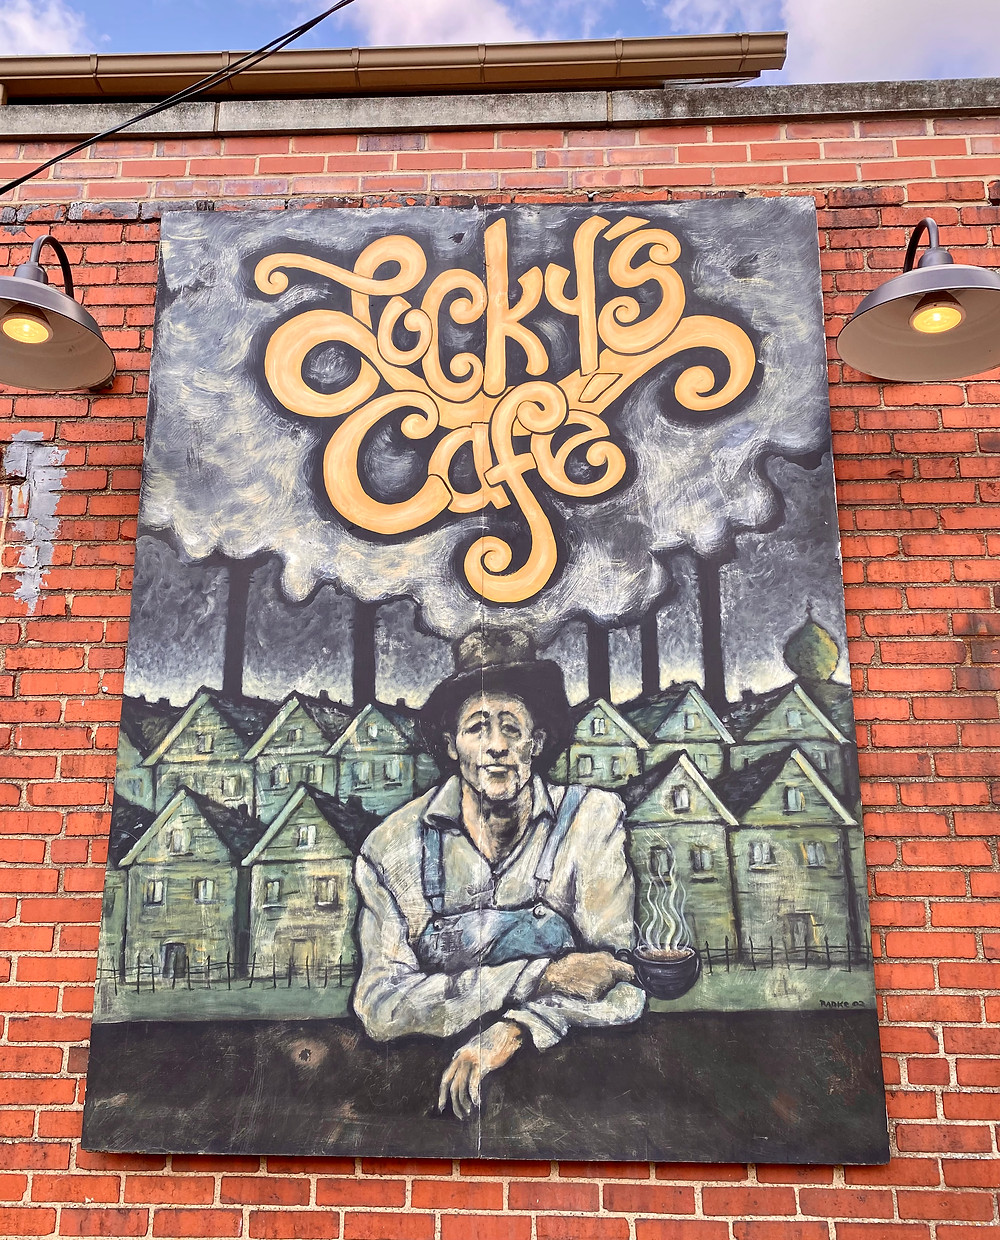 mural at Lucky's Cafe in the Tremont neighborhood